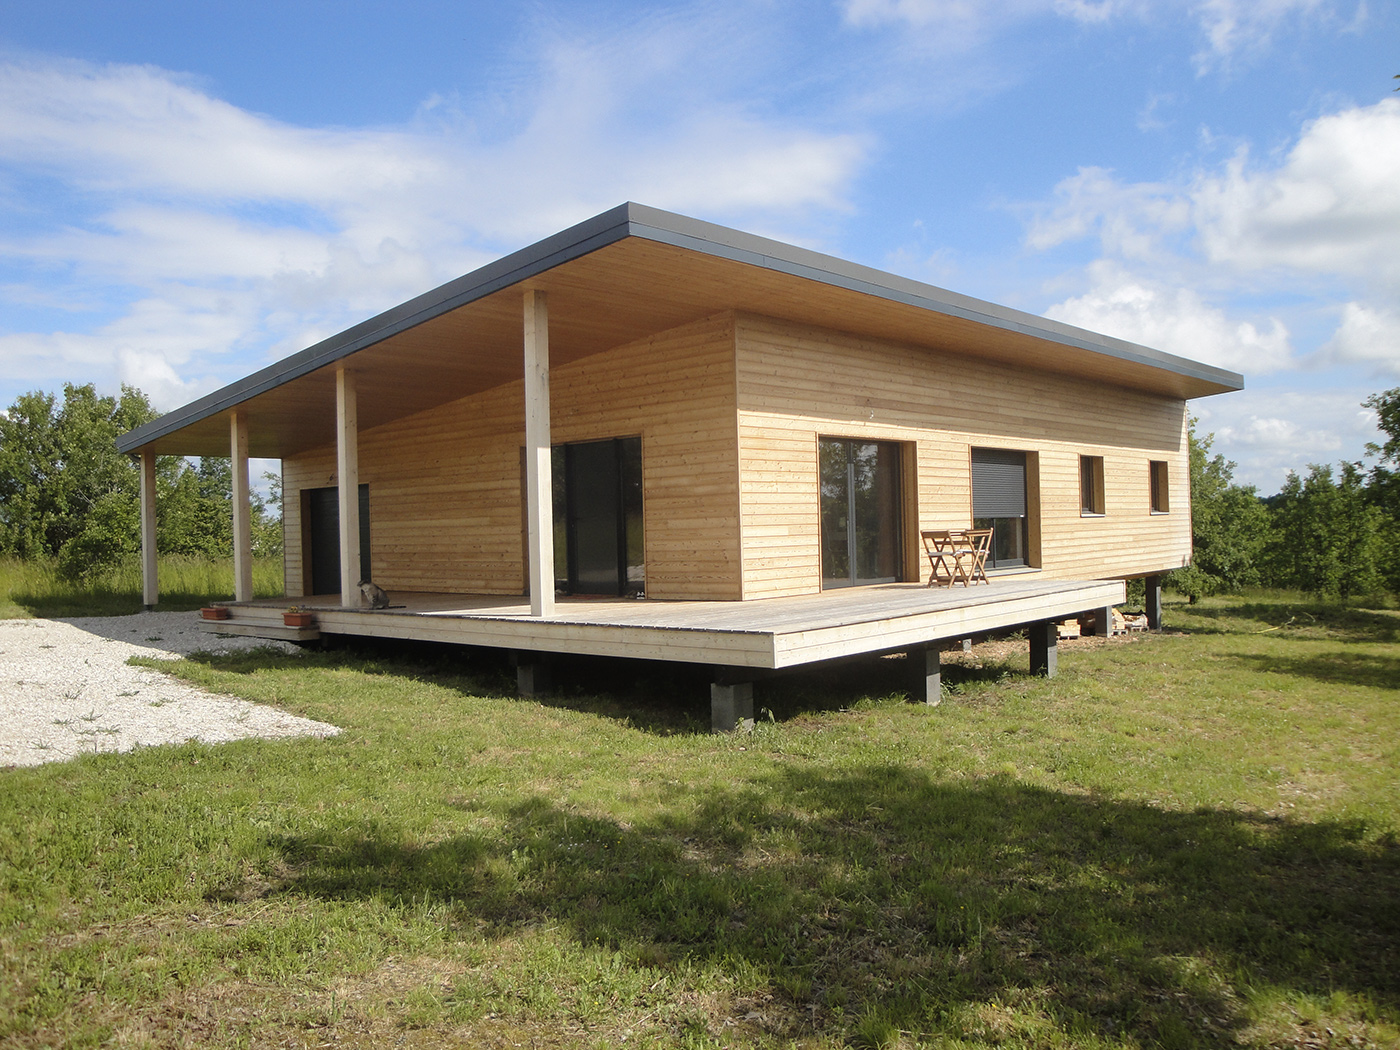 Maison contemporaine en ossature bois par evobois la for Maison monopente contemporaine